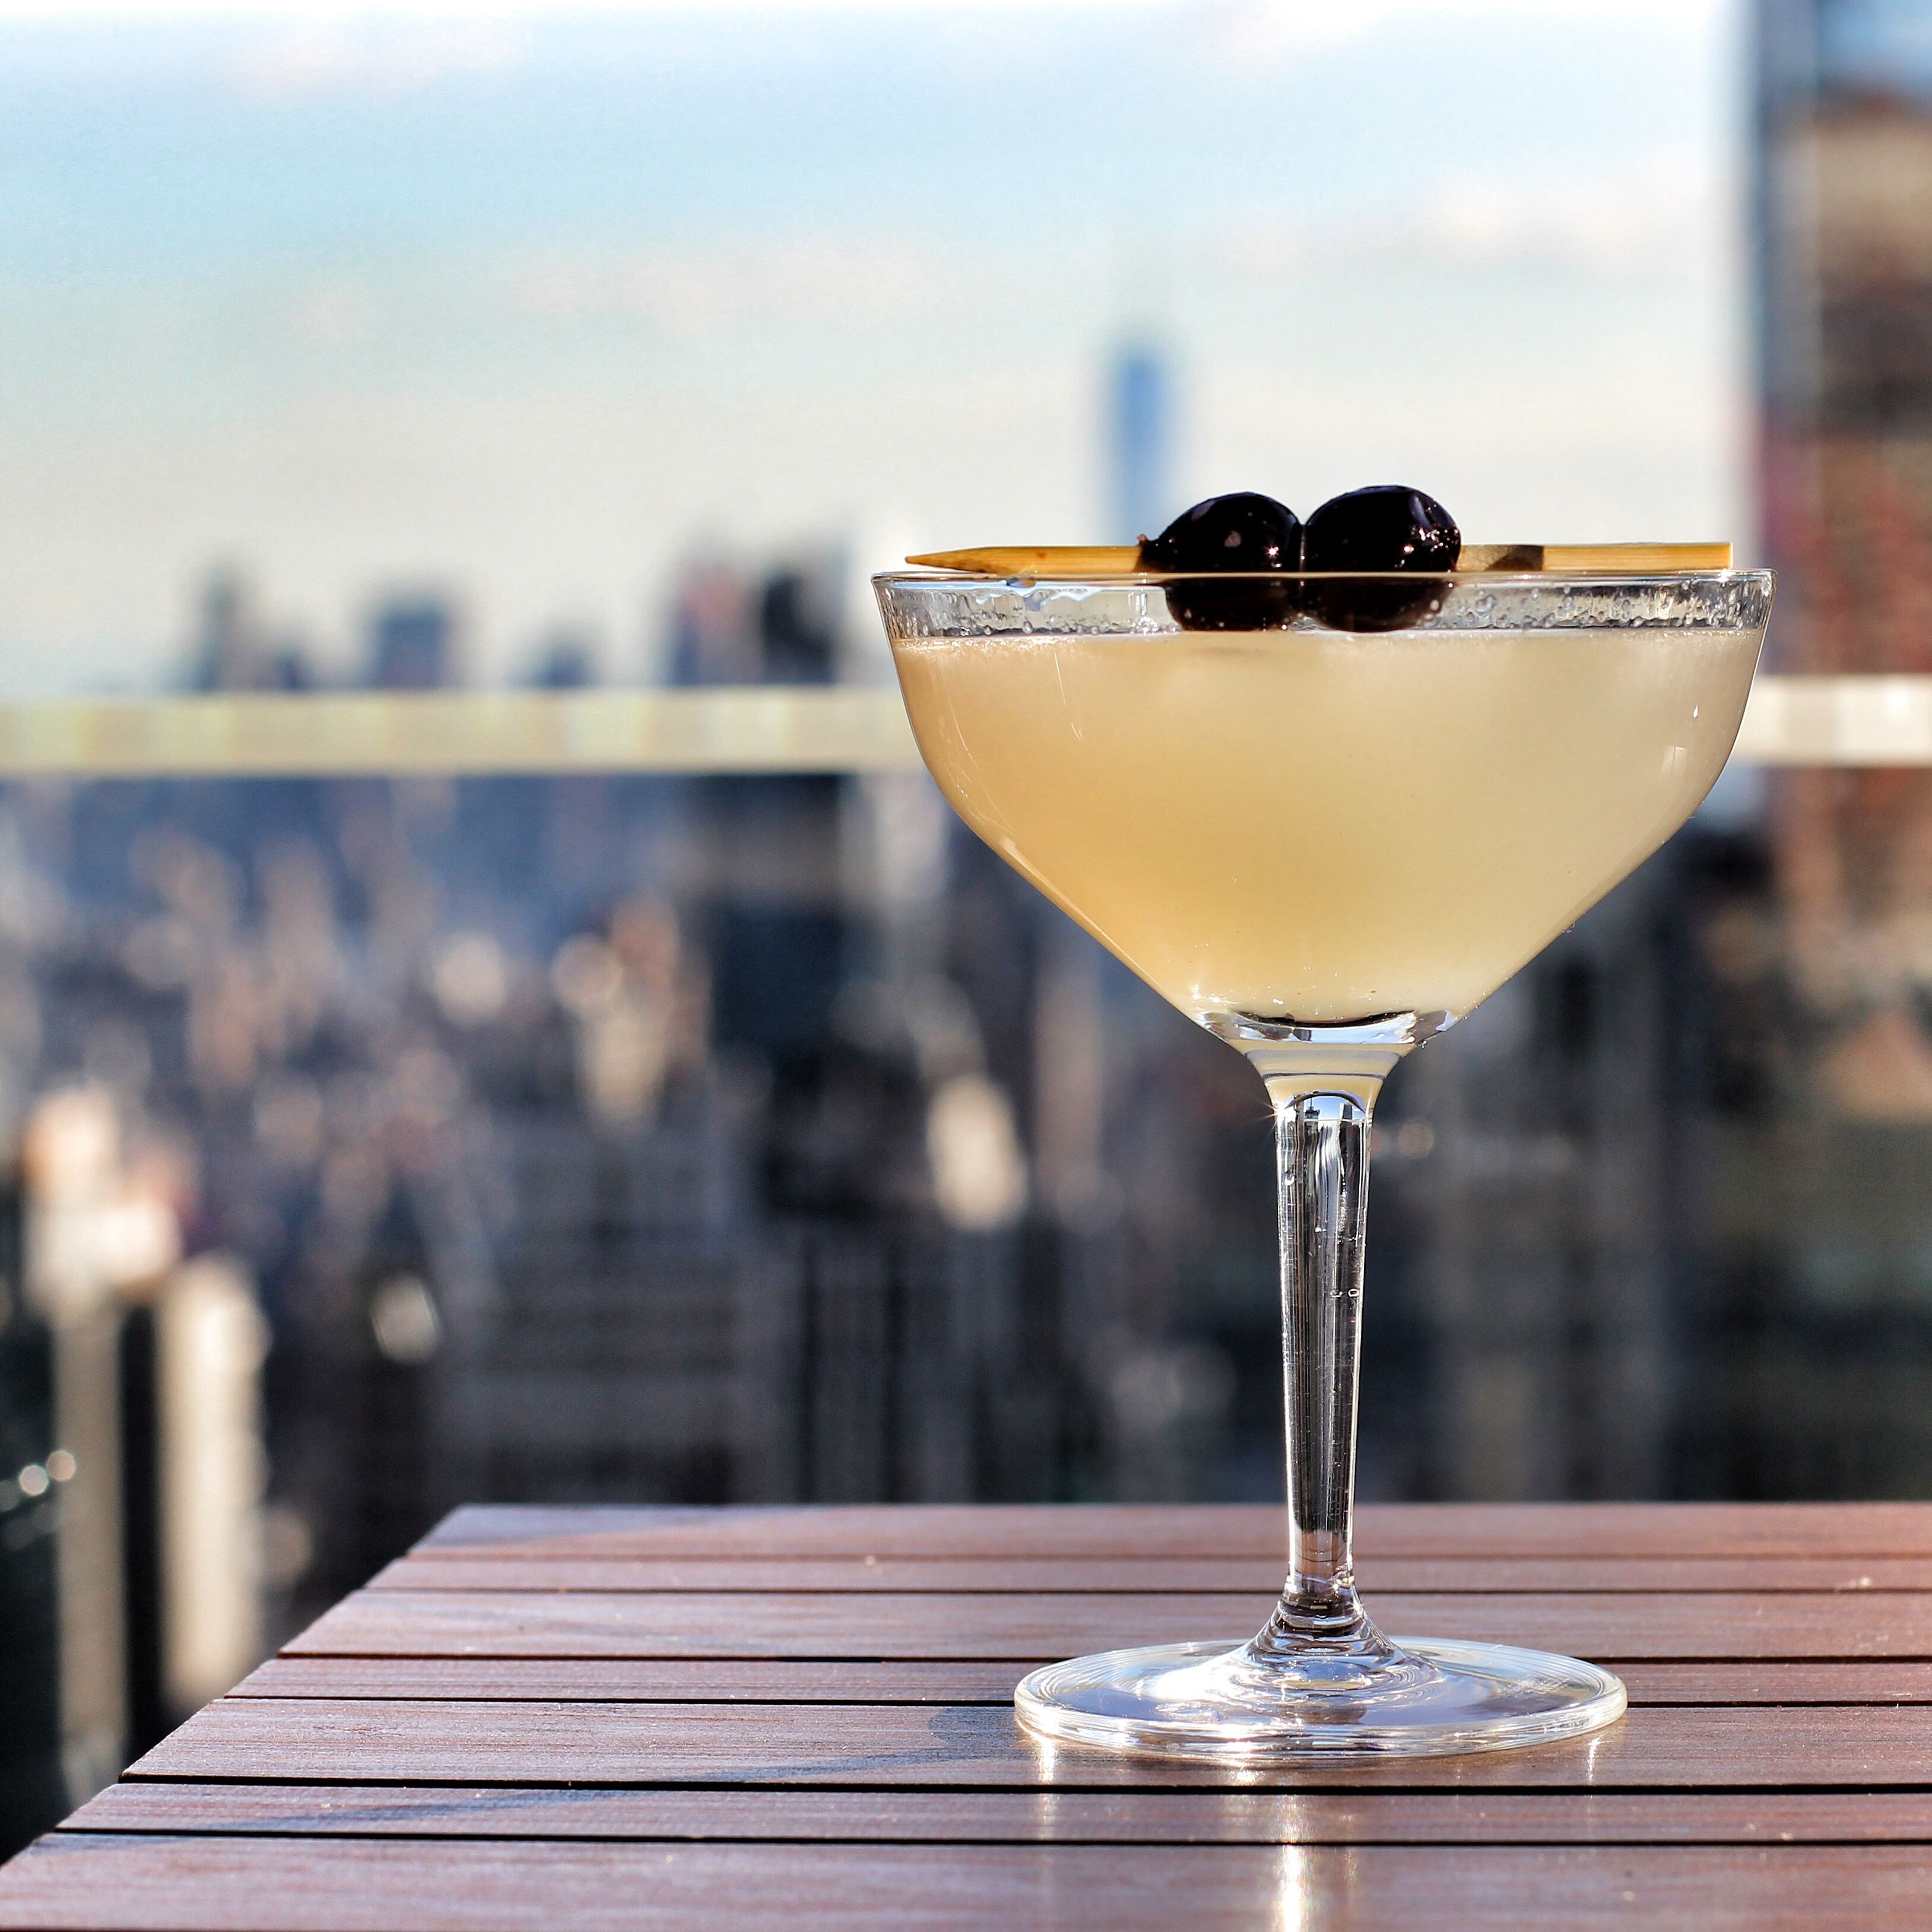 <p>Another one from Bar 54, this cocktail features lemon and triple sec for a delicious fruity drink. But don't be fooled—it packs a punch with gin, Lillet, and absinthe. </p><p><strong>Ingredients: </strong></p><p>1 oz gin </p><p>1 oz Lillet </p><p>1 oz cointreau (triple sec)</p><p>1 oz lemon </p><p>Splash of absinthe</p><p><strong>Directions:</strong></p><p>Shake all ingredients together over ice. Served in a coupe with 2 cherries. </p>